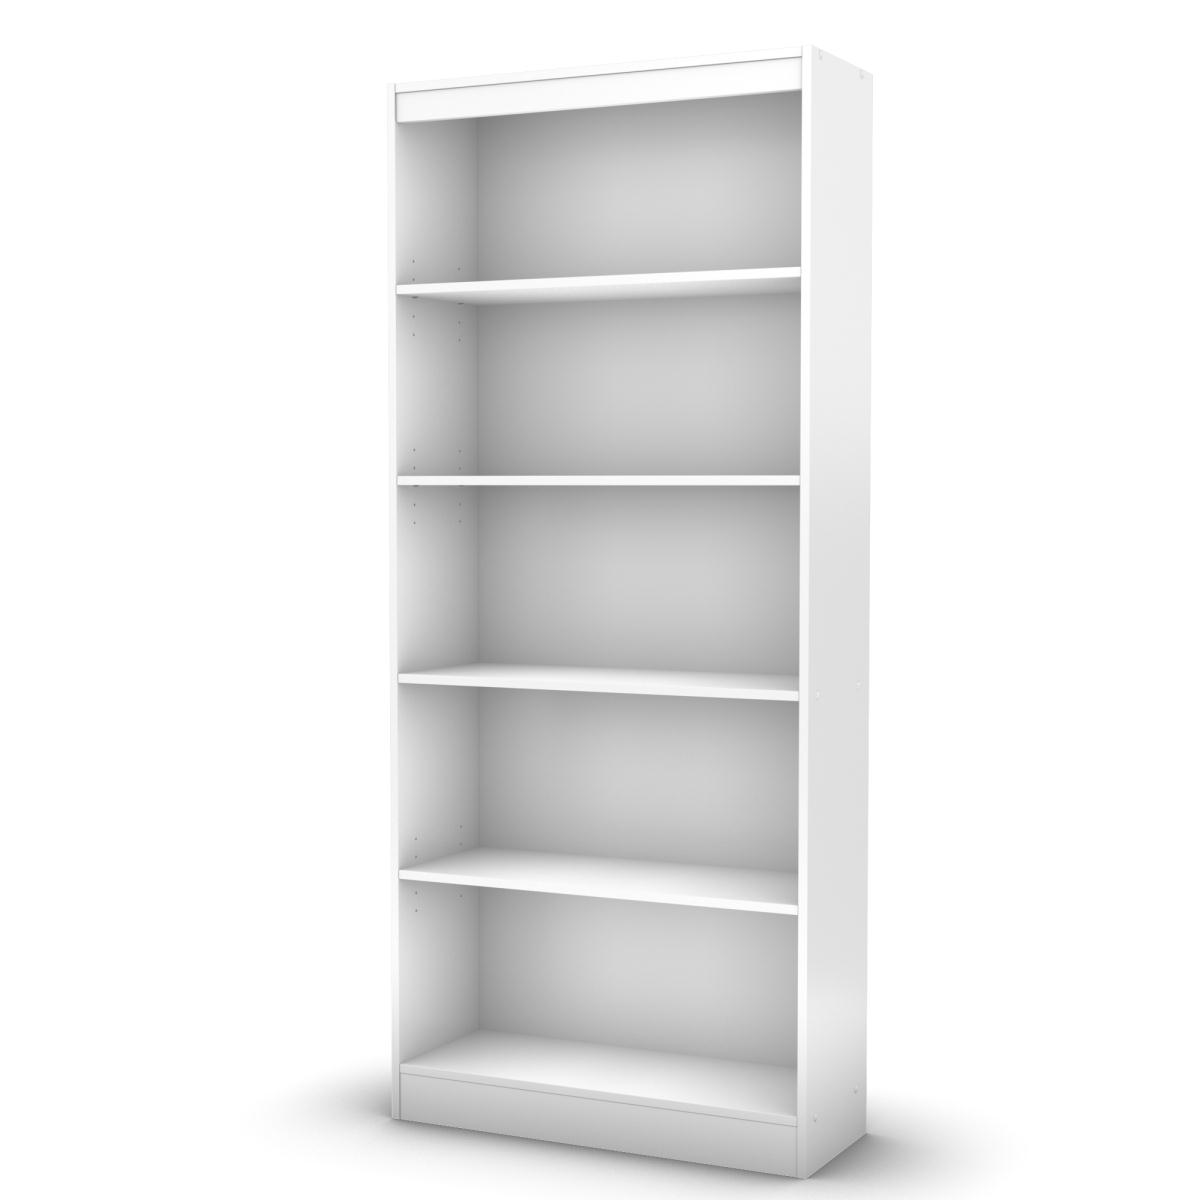 #666666 SS 7250768c Collection 5 Shelf Bookcase Pure White South Shore 30  with 1200x1200 px of Most Effective 15 Wide Bookcase 12001200 wallpaper @ avoidforclosure.info